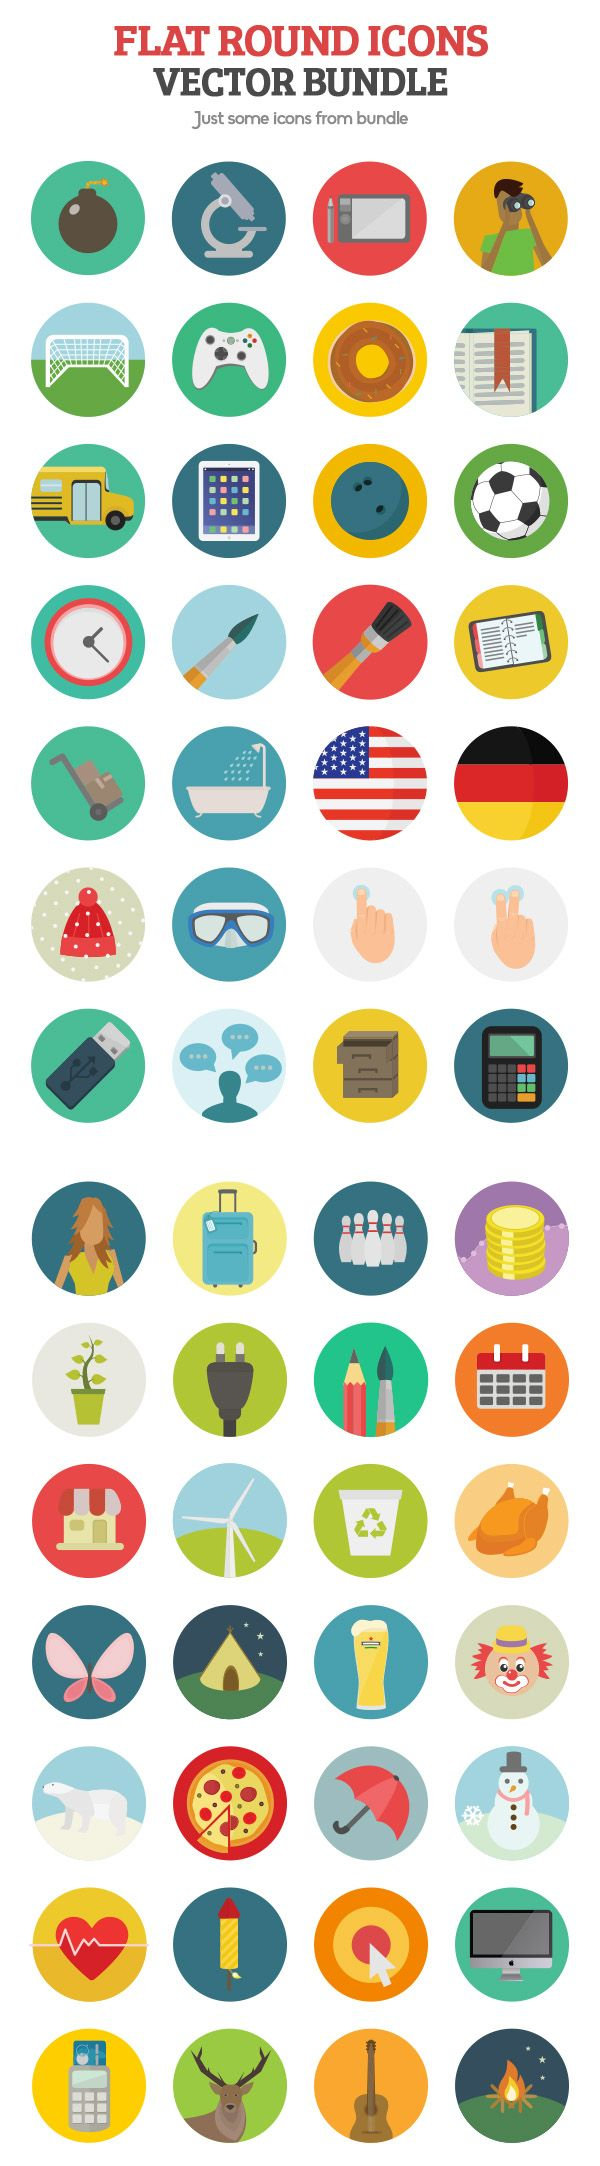 1000 Flat Round Icons Vector Bundle #vectoricons #flaticons #roundicons